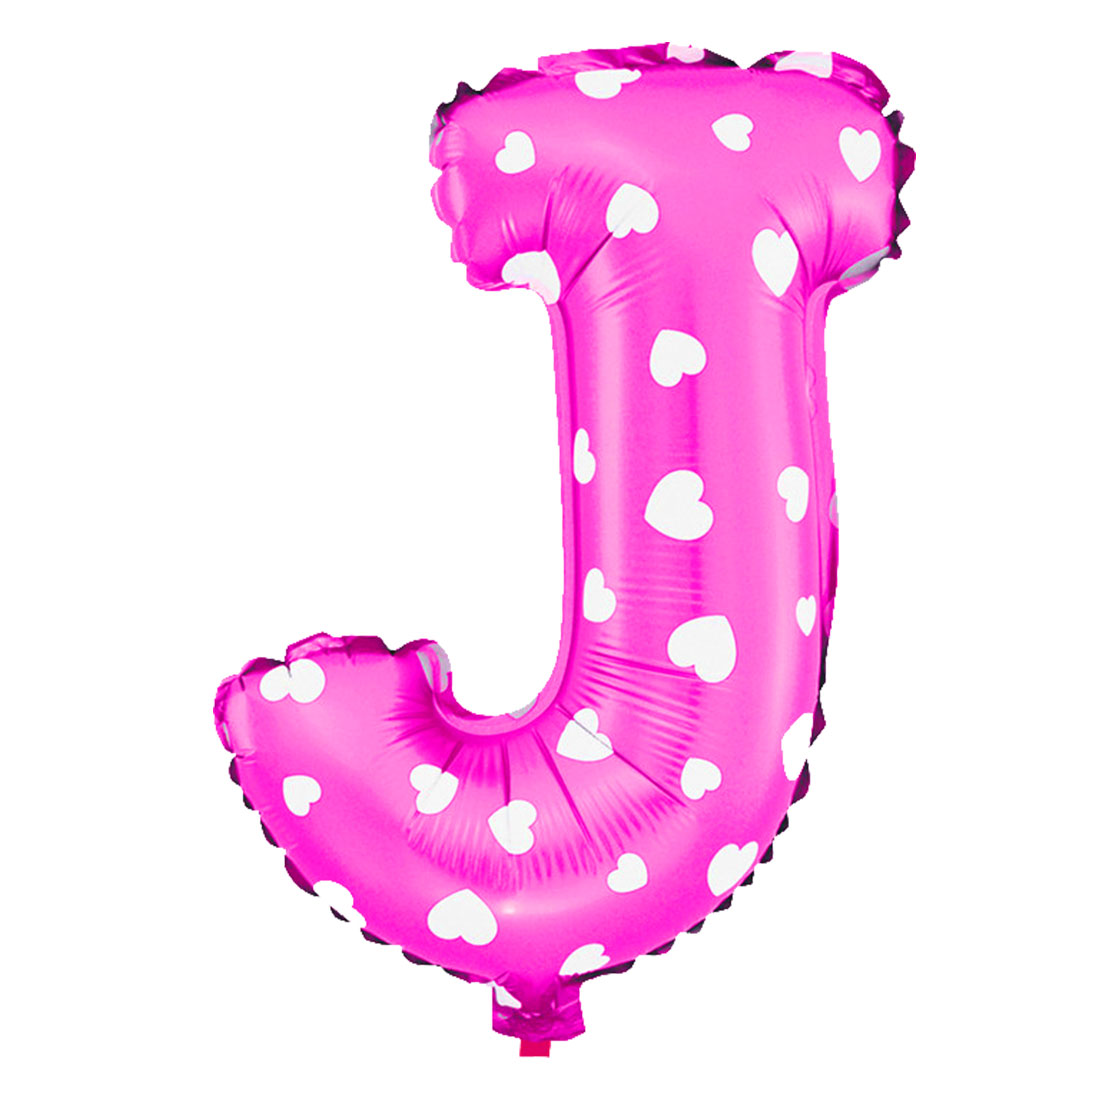 Unique Bargains Foil Letter J Heart Pattern Helium Balloon Birthday Wedding Decor Fuchsia 16""